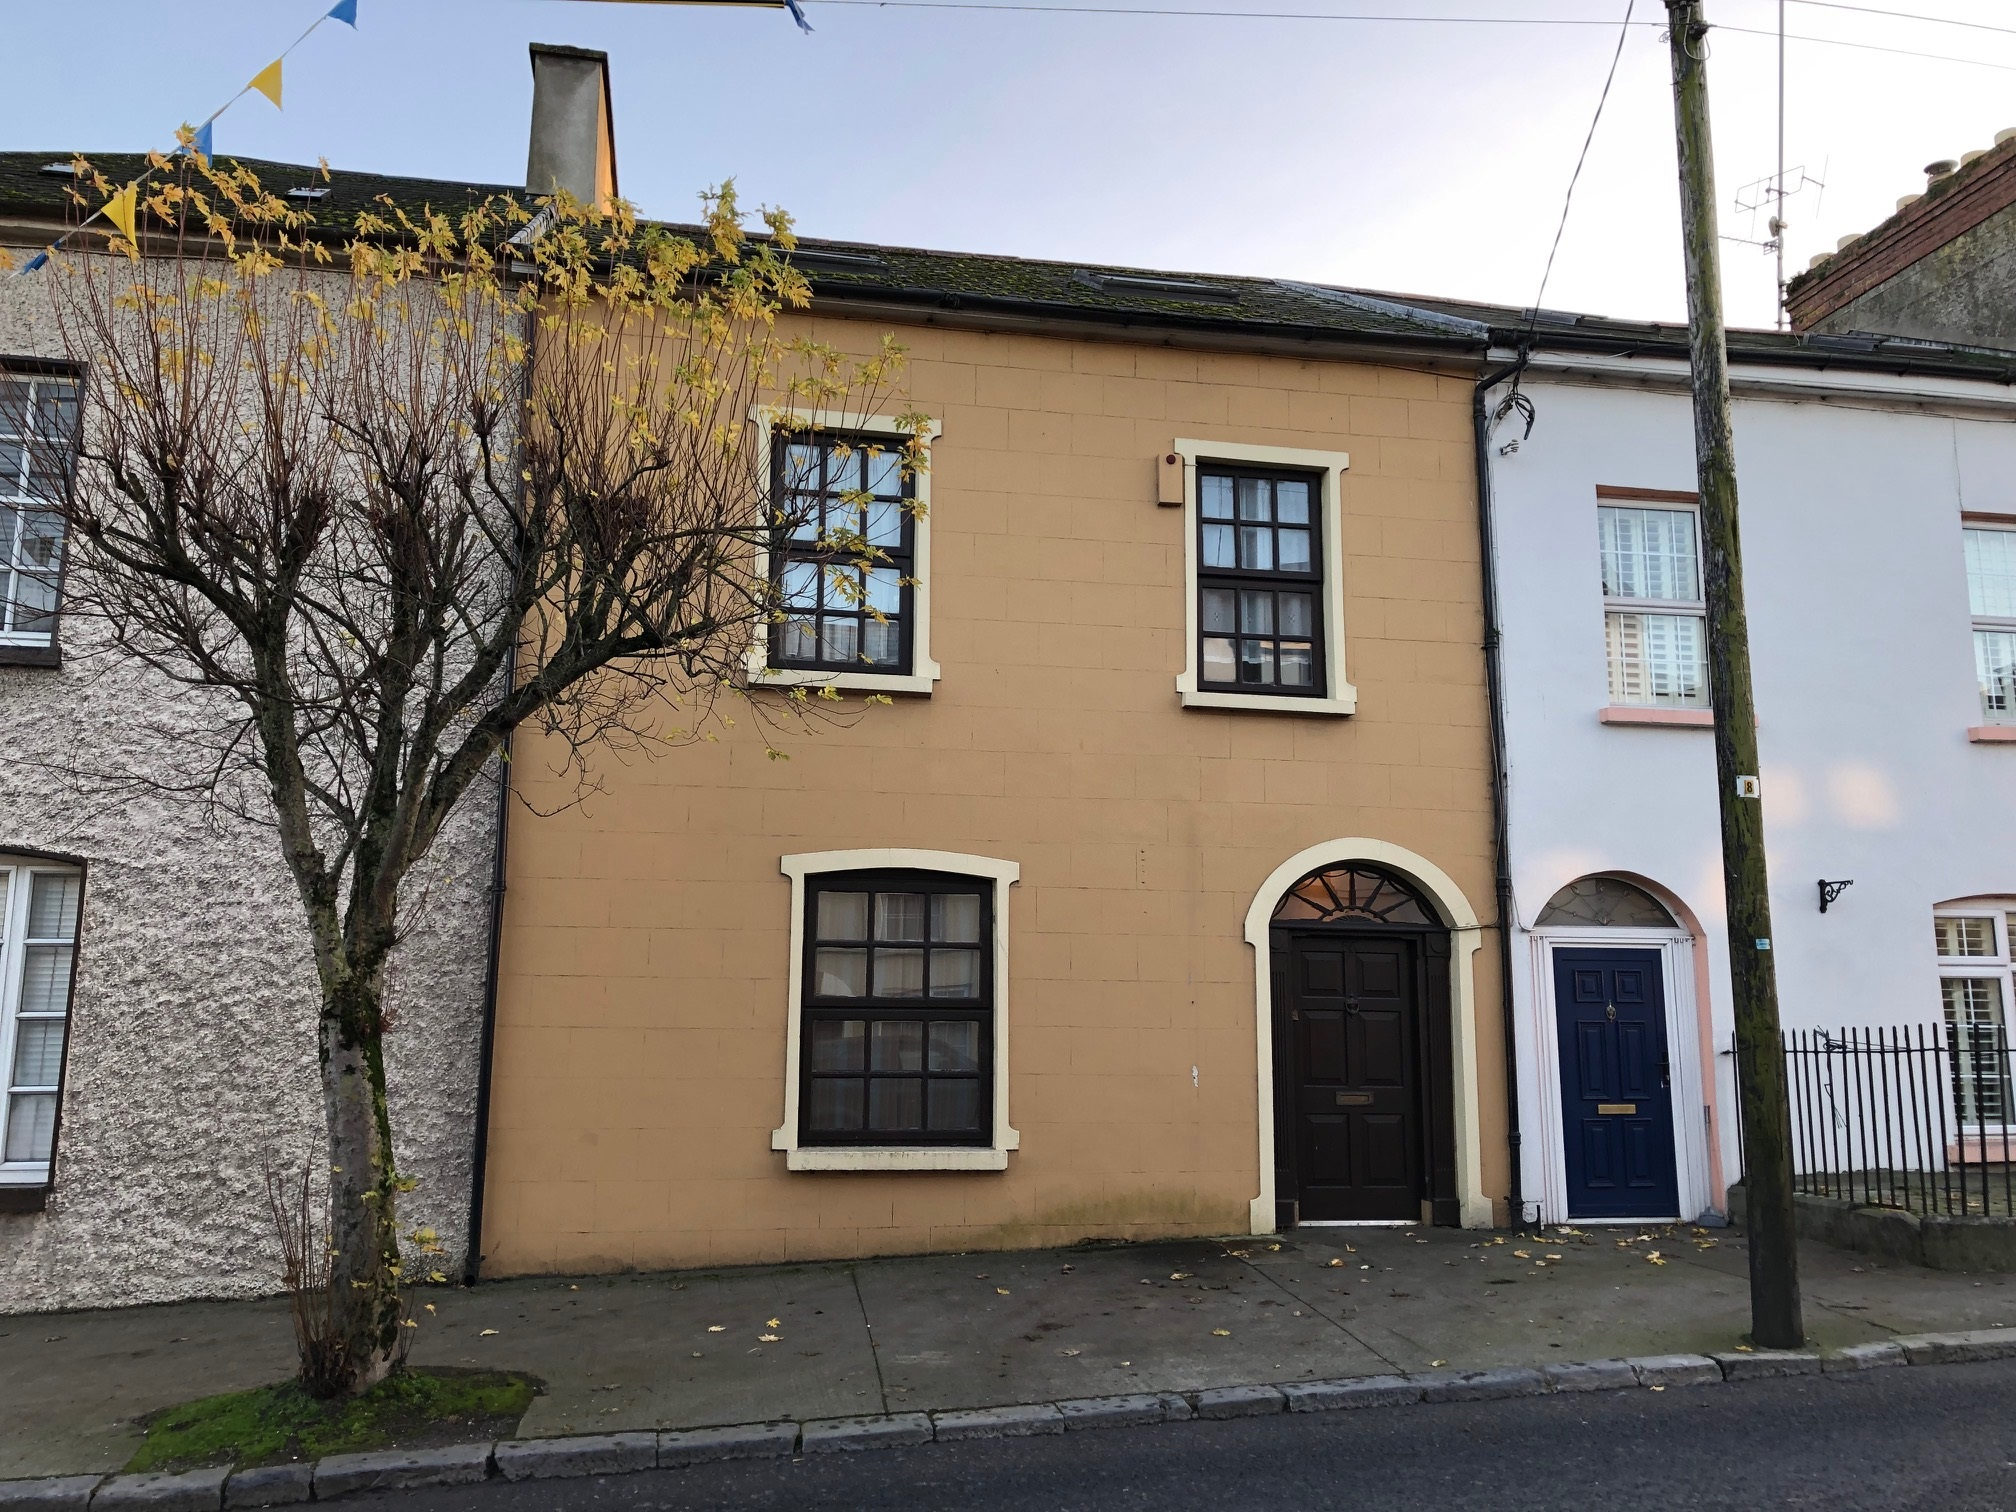 56 O'Brien Street, Tipperary Town, Co. Tipperary